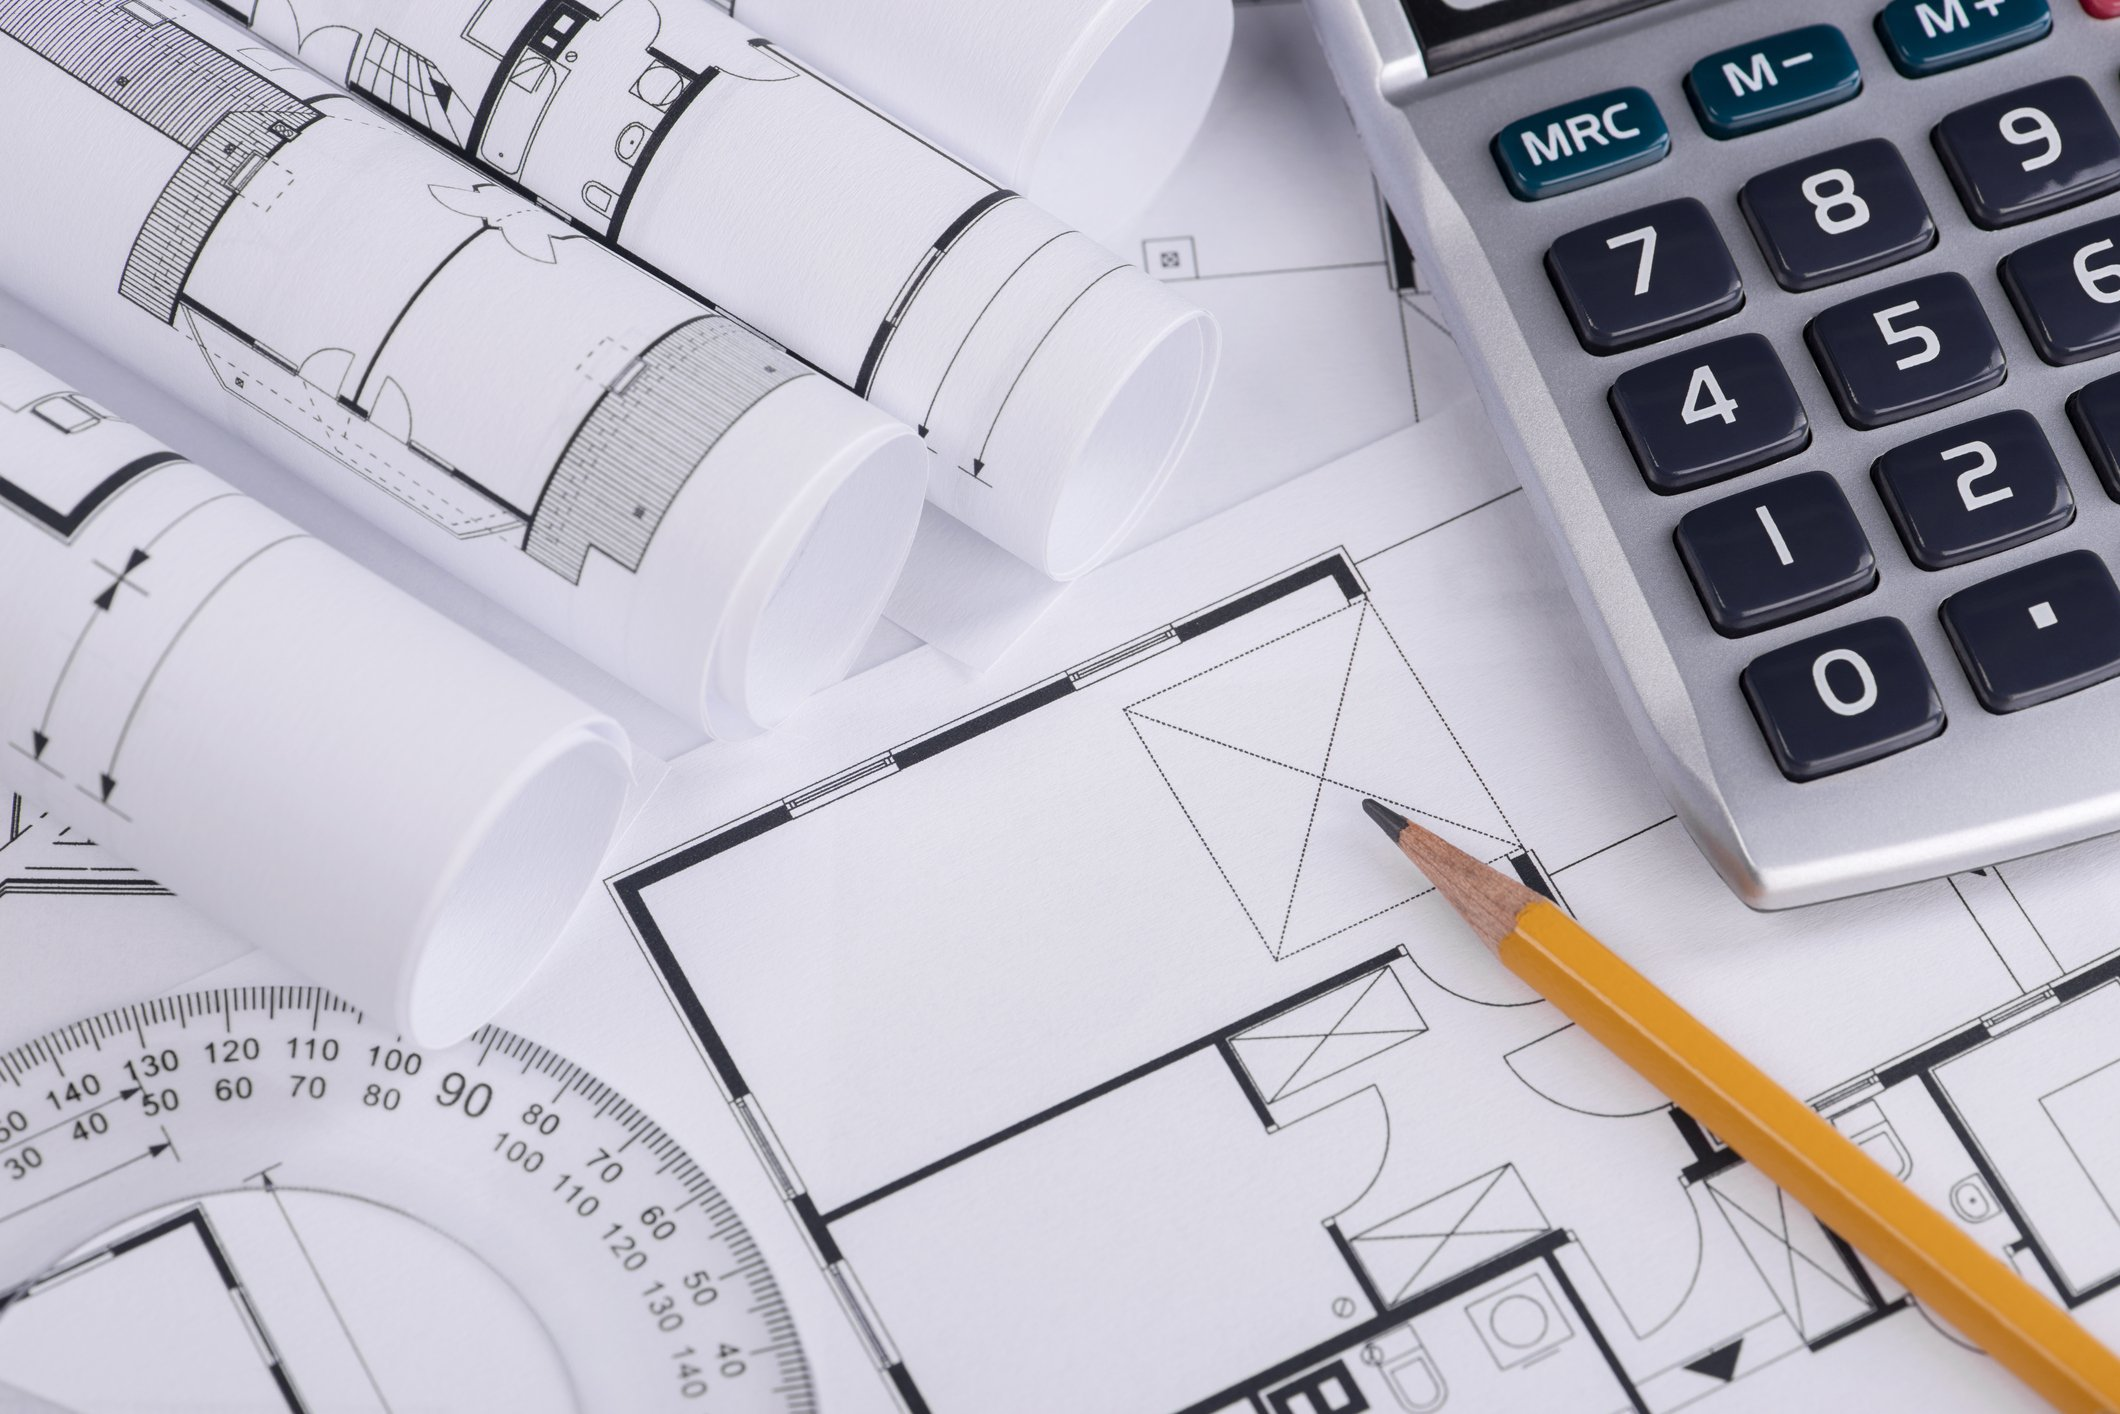 Home construction blueprints with calculator and pencil on top